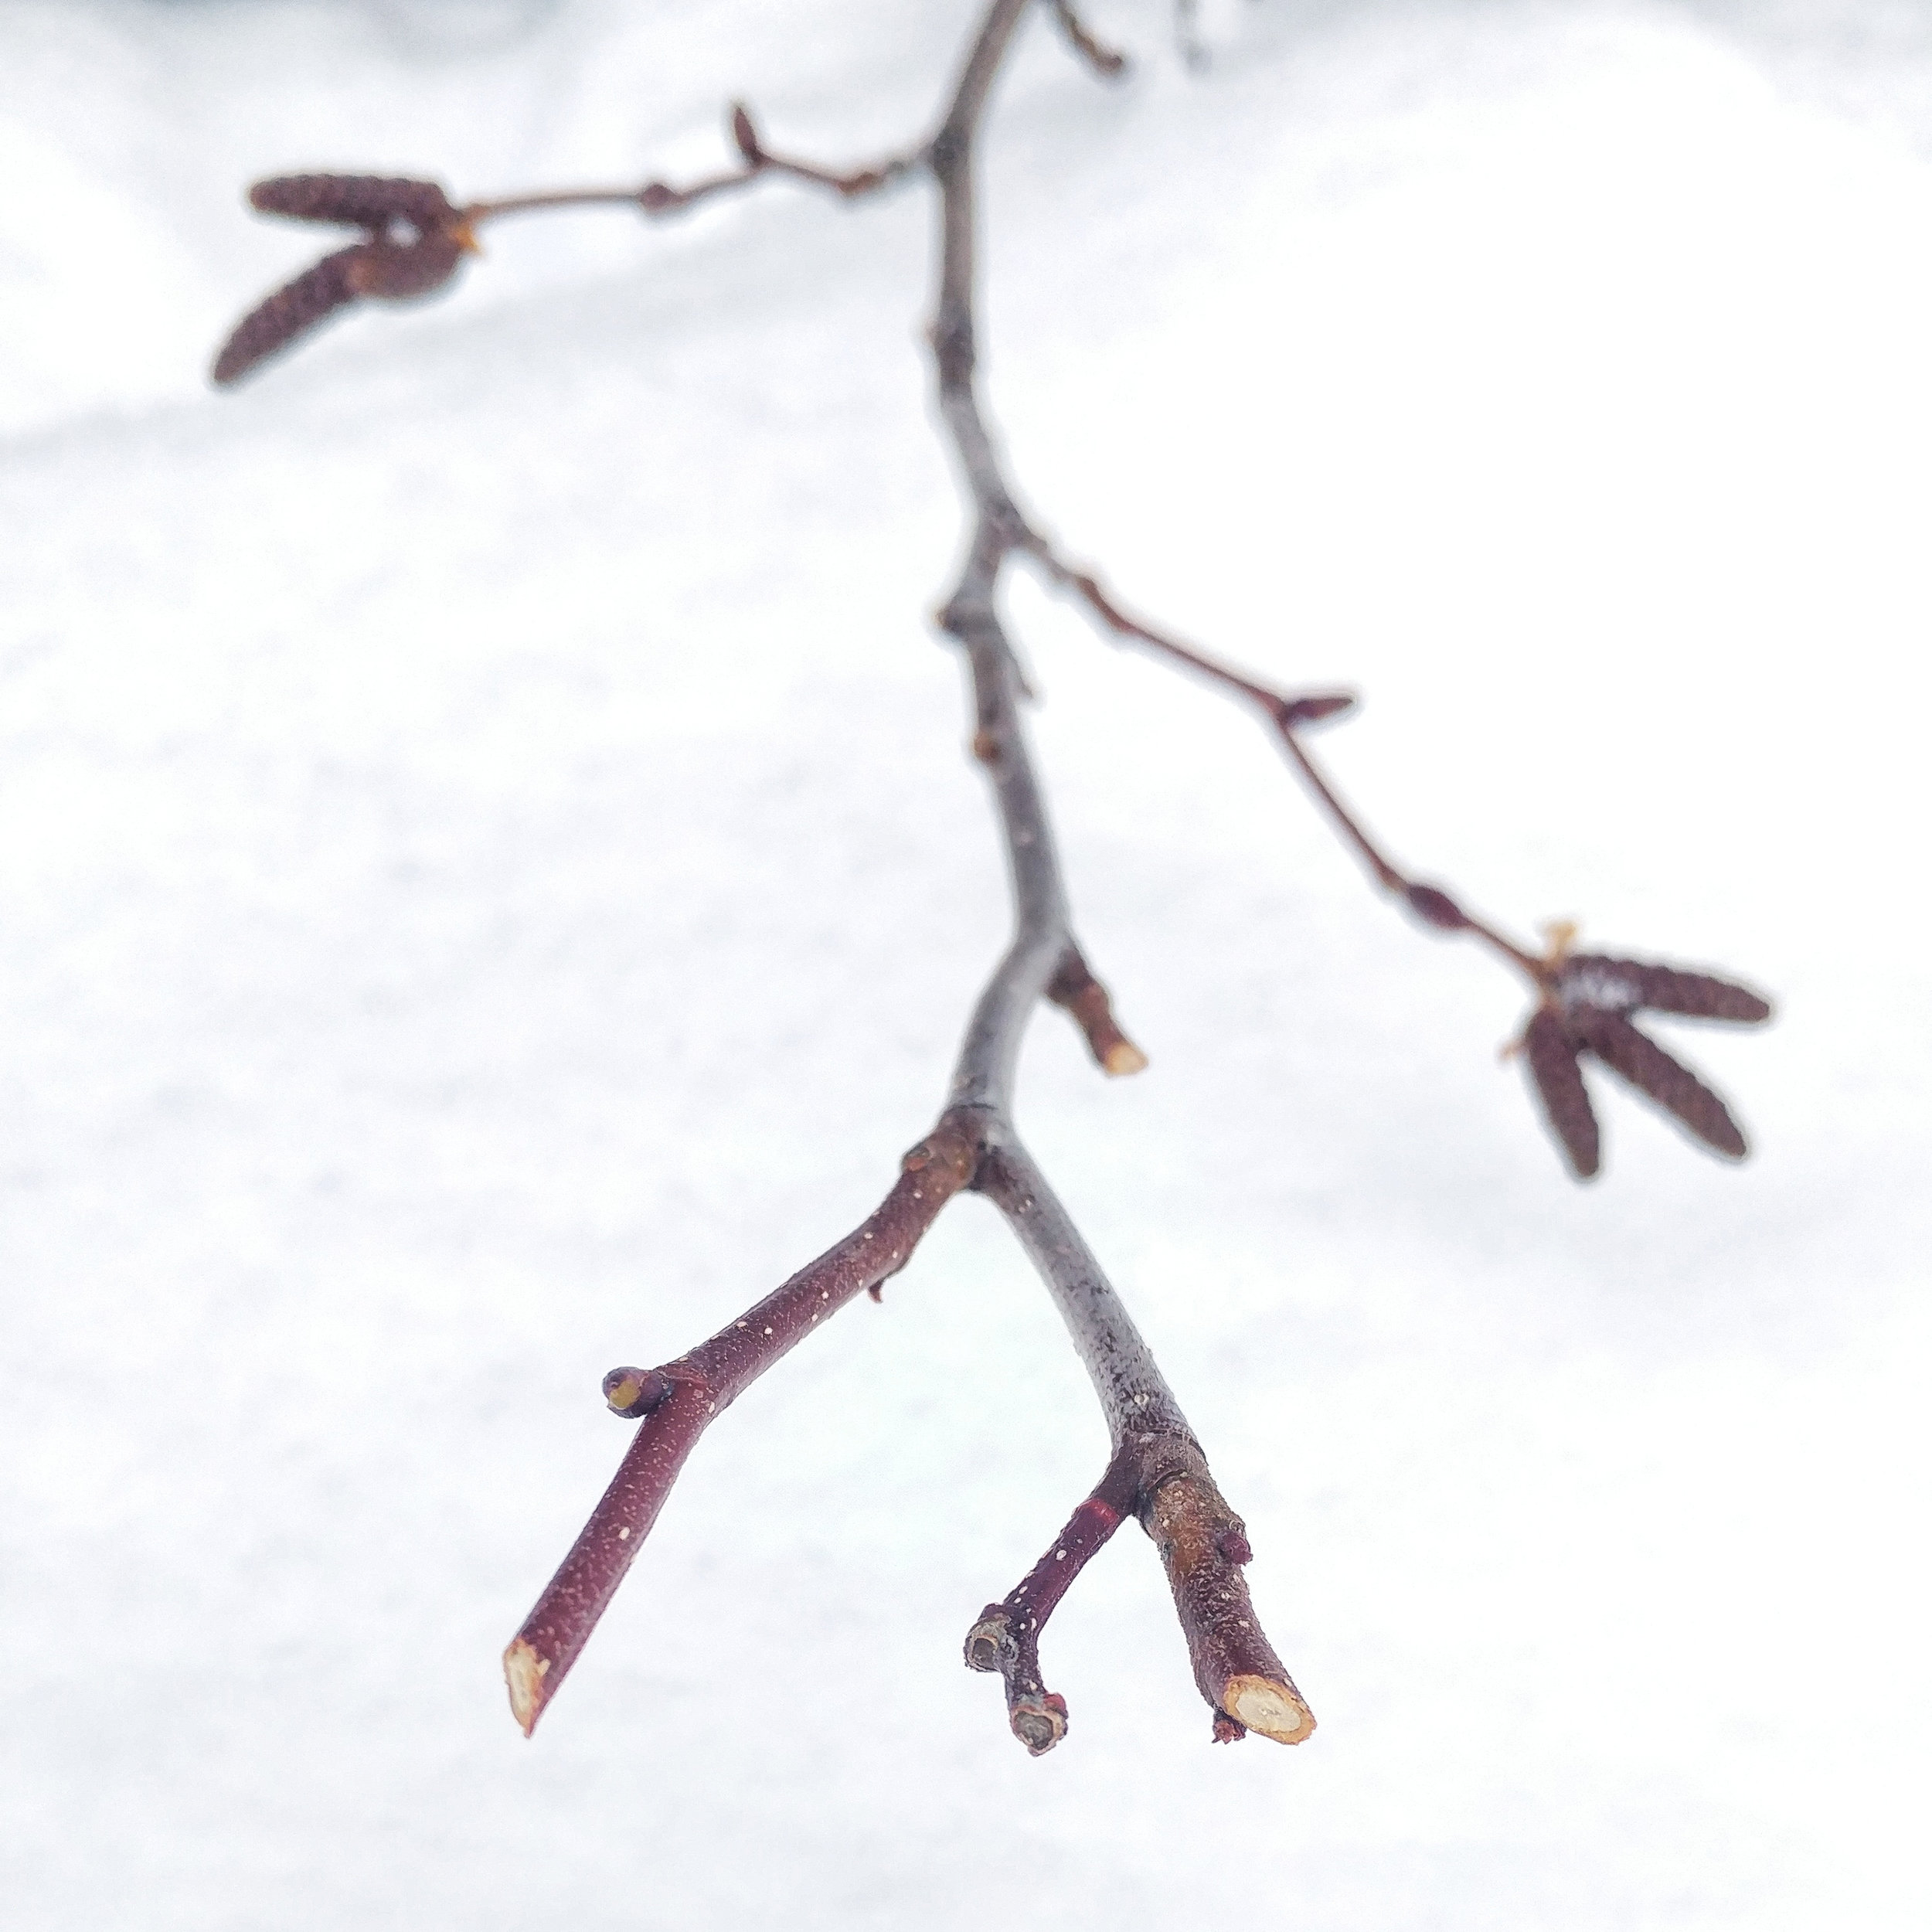 Alder shrubs browsed by a Snowshoe Hare, showing the characteristic 45 degree bite marks.